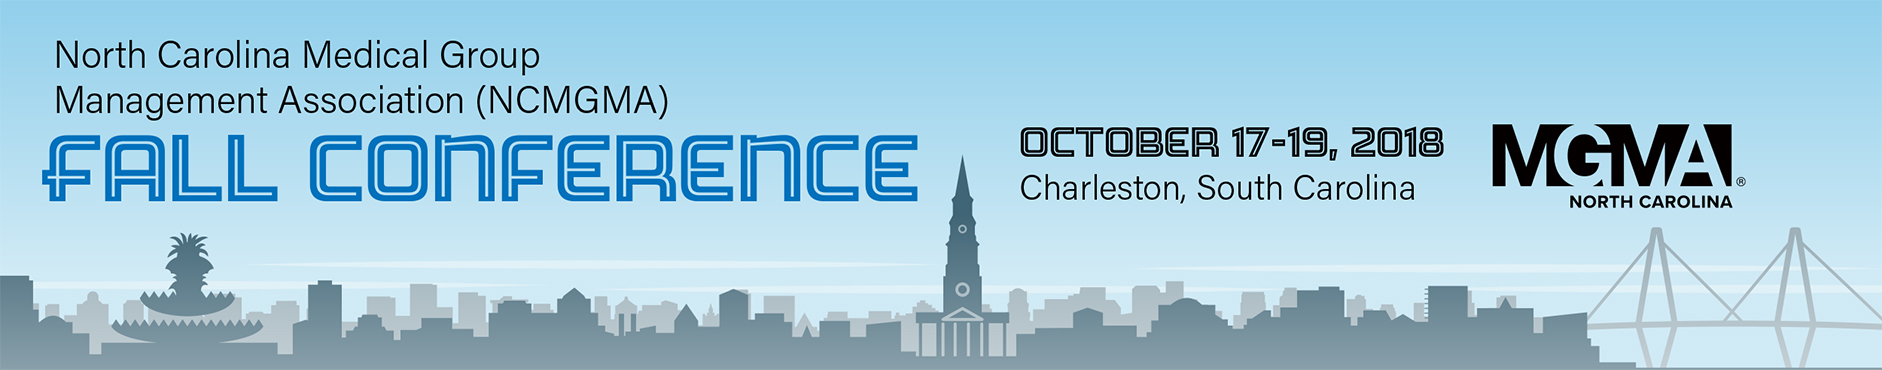 Fall Conference Theme Image